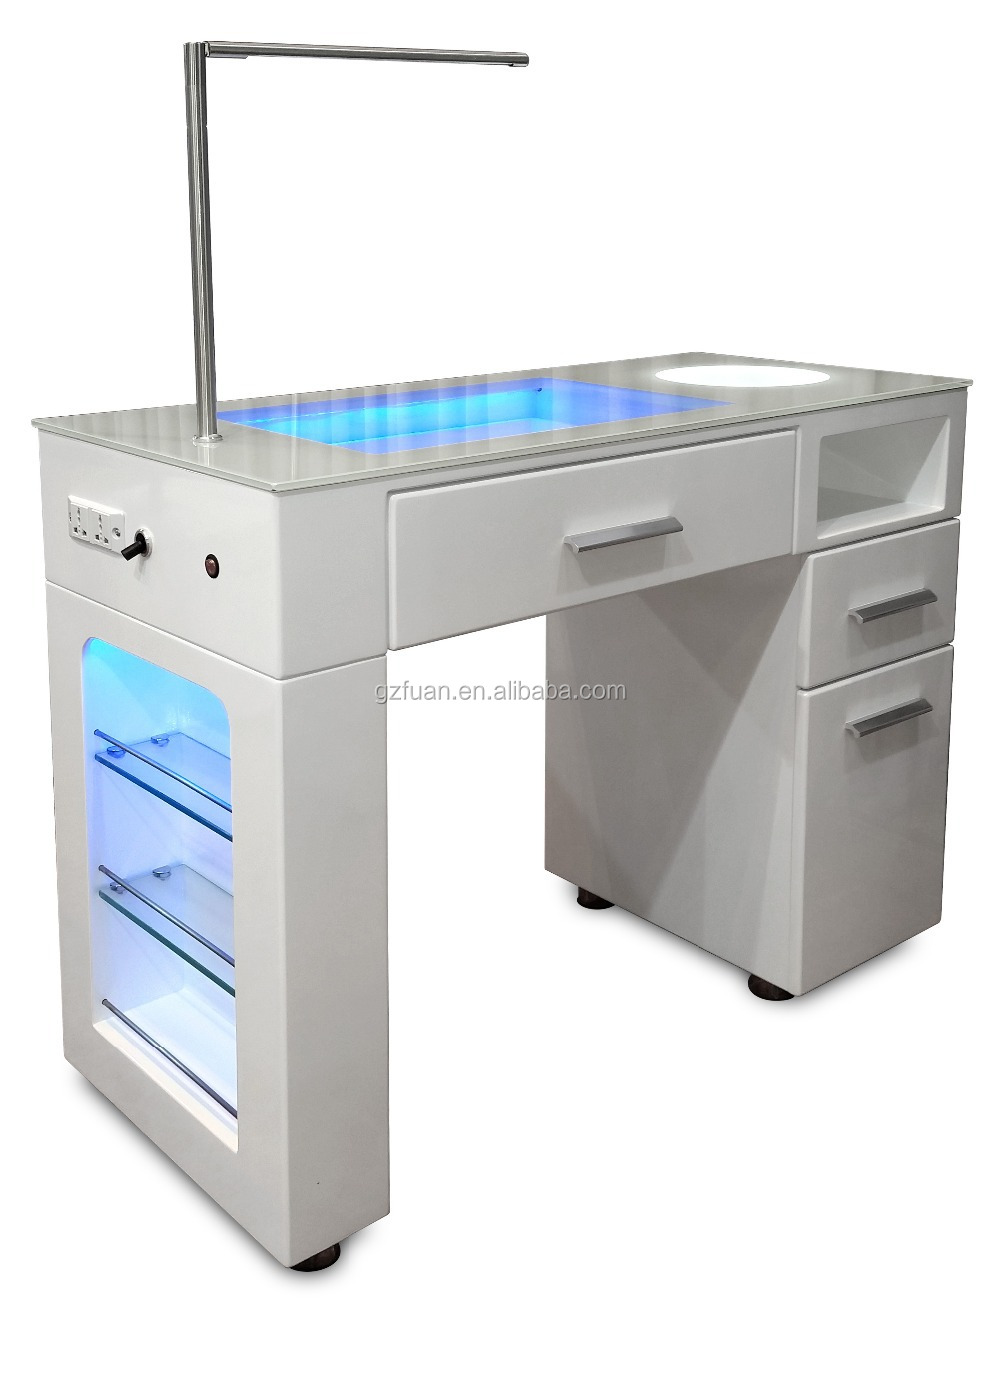 Salon Furniture Equipment High Quality Manicure Luxury